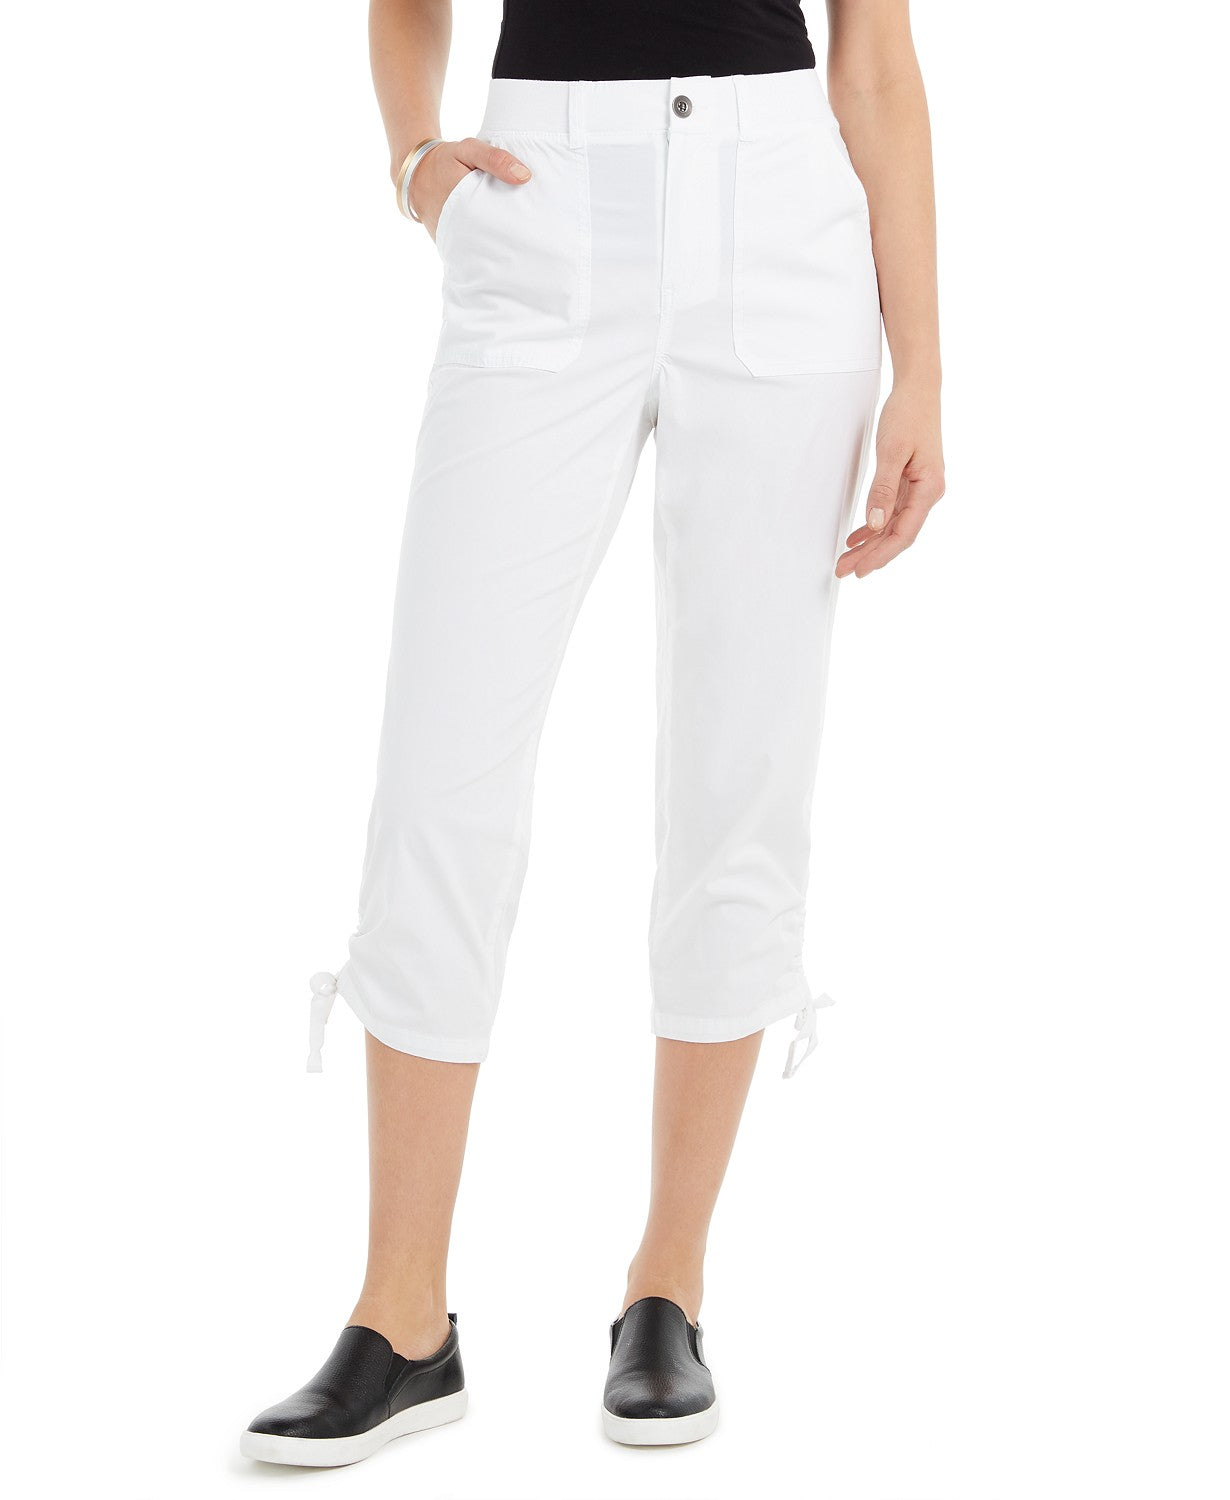 Style & Co Cropped Cargo Pants - Bright White